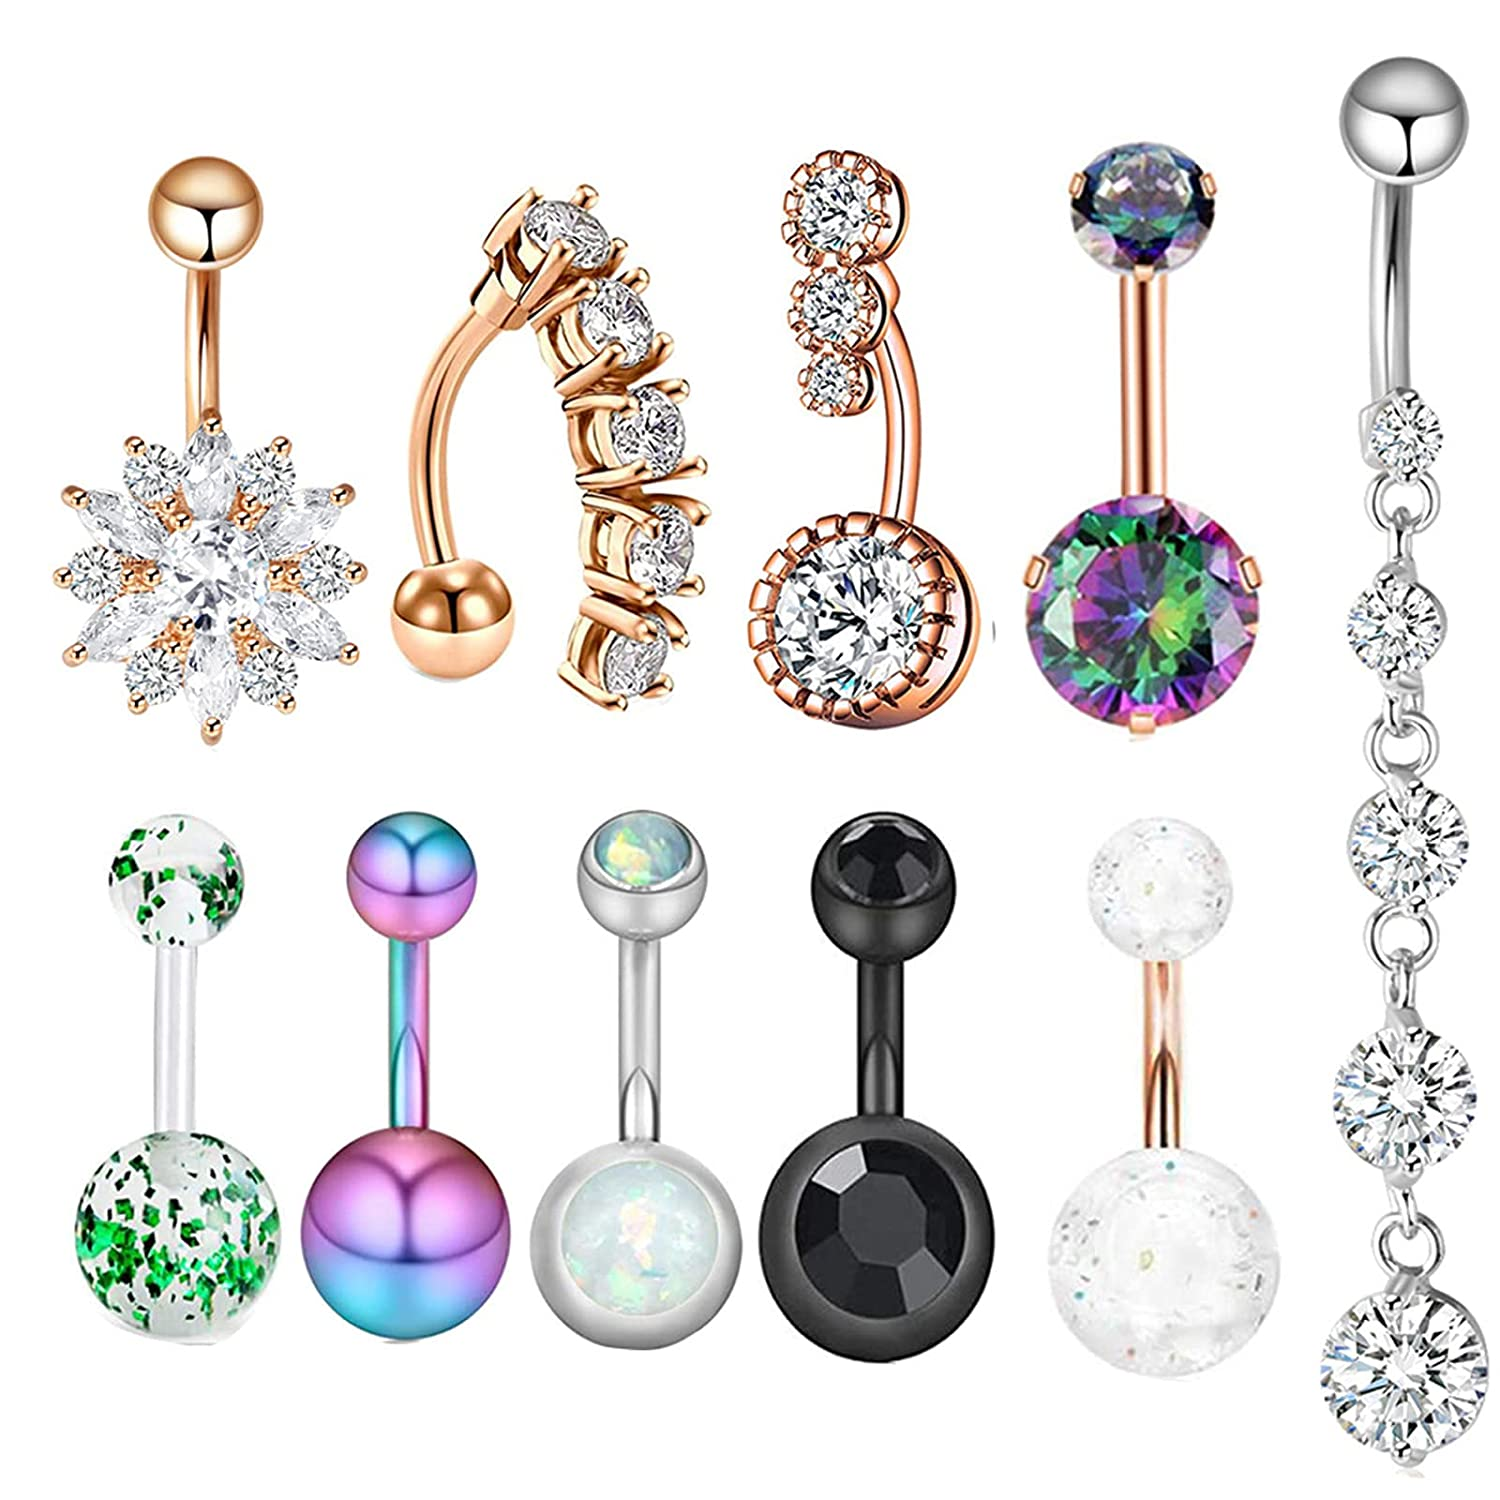 Belly Button Ring, 12 gauge Zircon Belly Button Ring Shinny Stainless Steel SET for Women Girls Navel Piercing Bars Dangle Body Jewelry (10PCS)